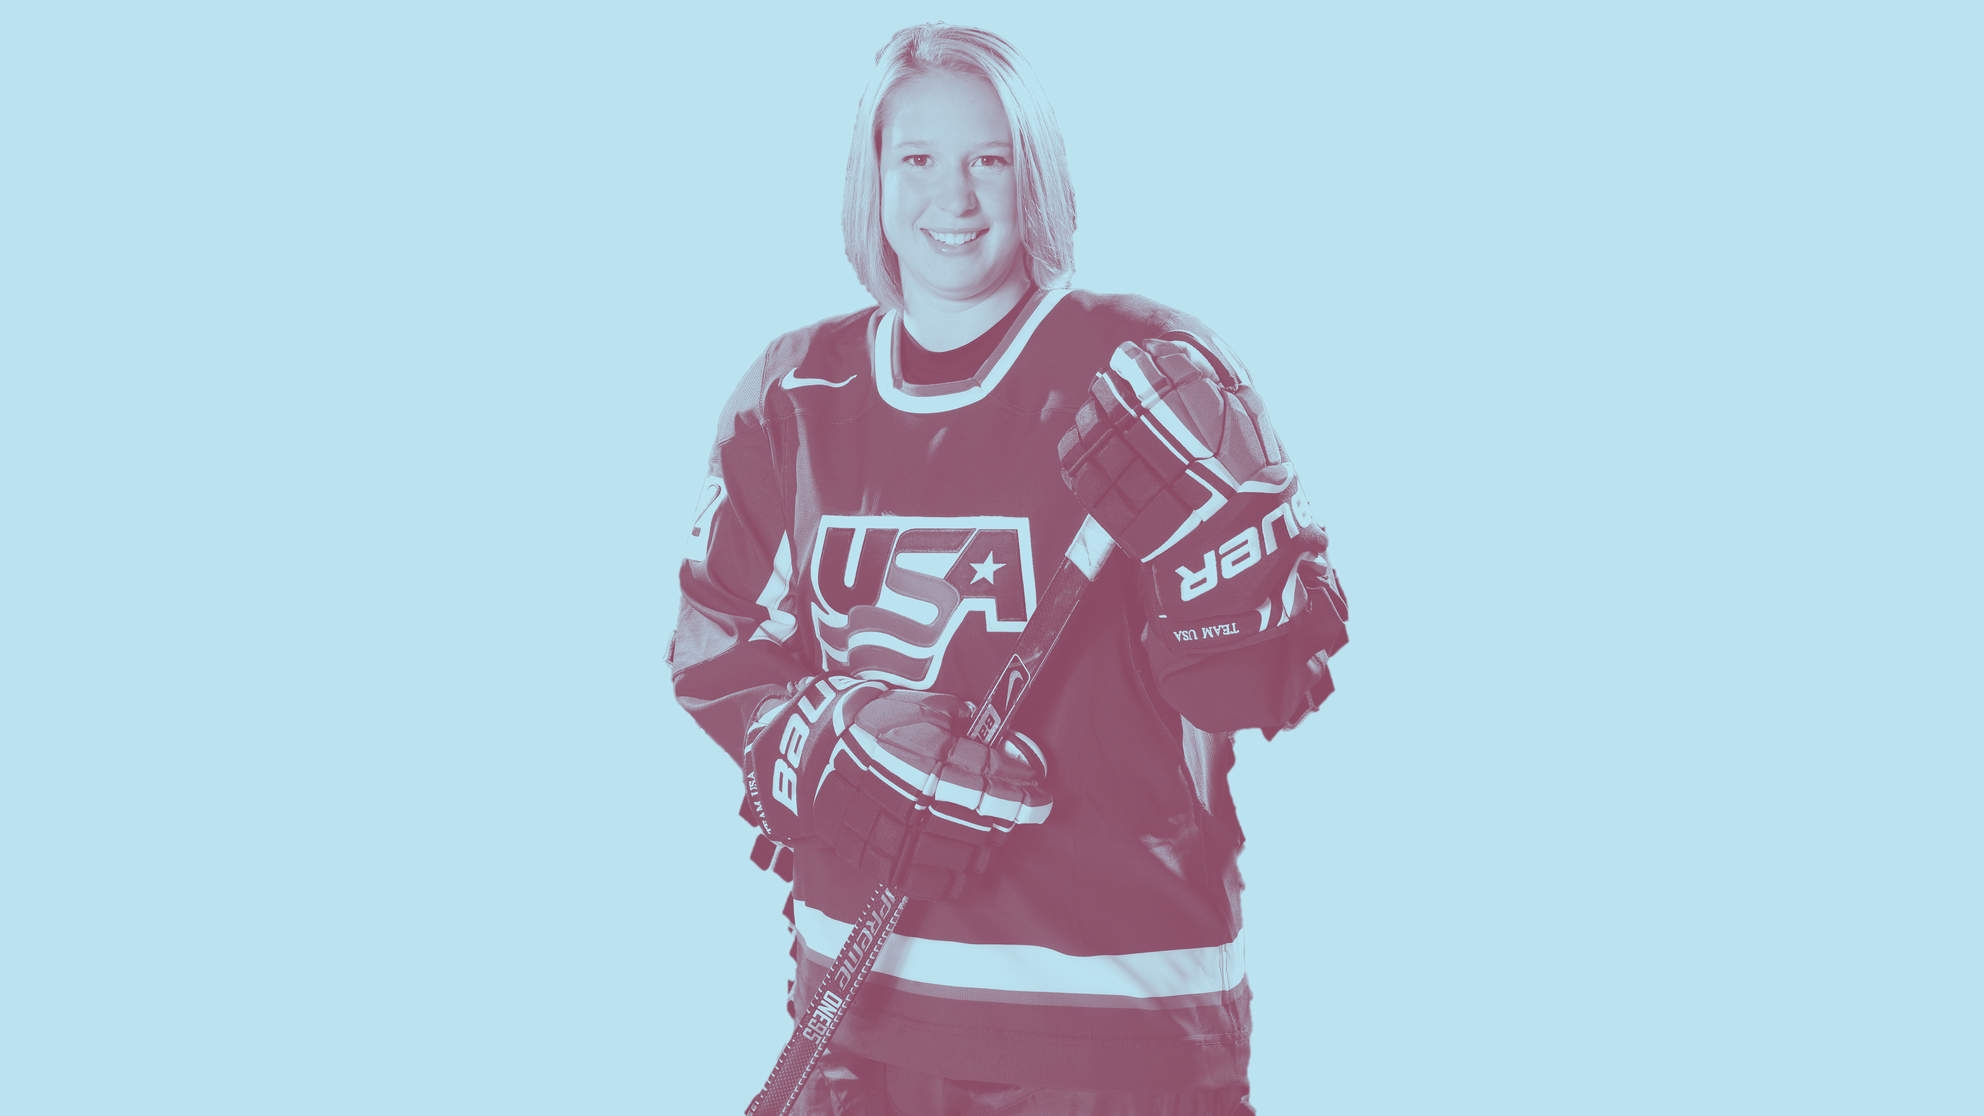 Former USA Hockey Star Rachael Malmberg, 33, Says Radon Gas Caused Her Stage 4 Lung Cancer